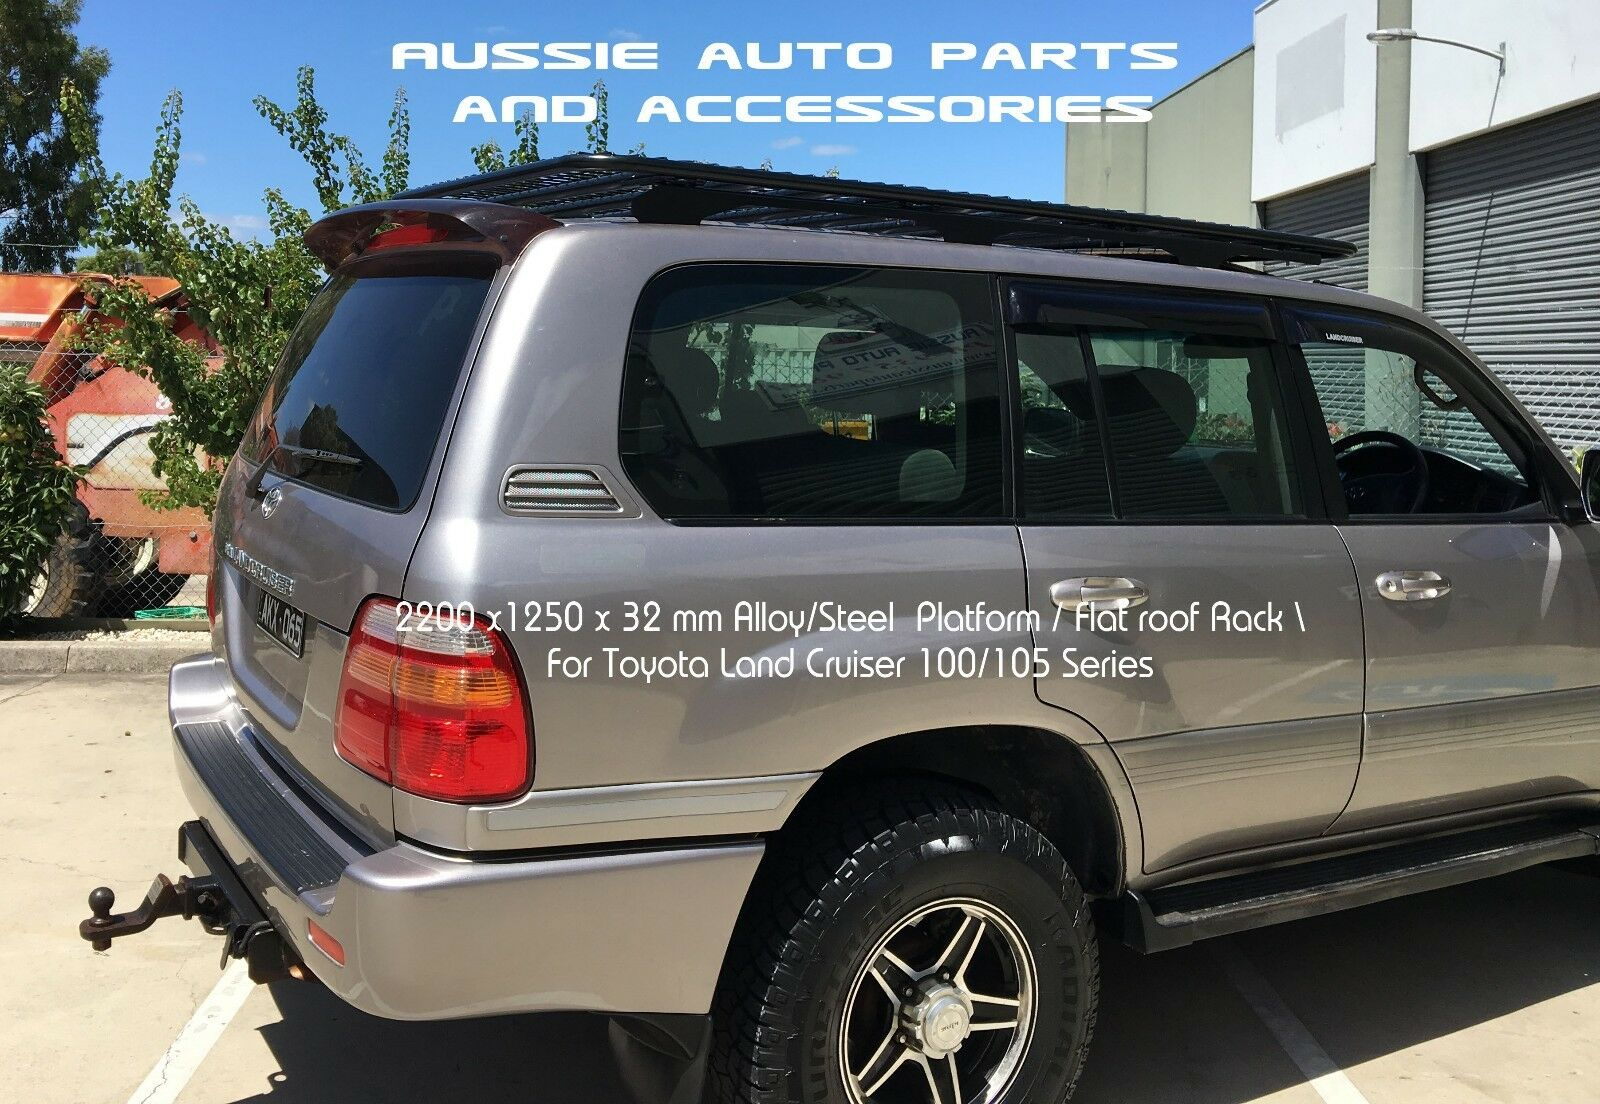 Alloy Flat Roof Rack 2200mm For TOYOTA Land Cruiser 100 Series Alloy Roof  Rack